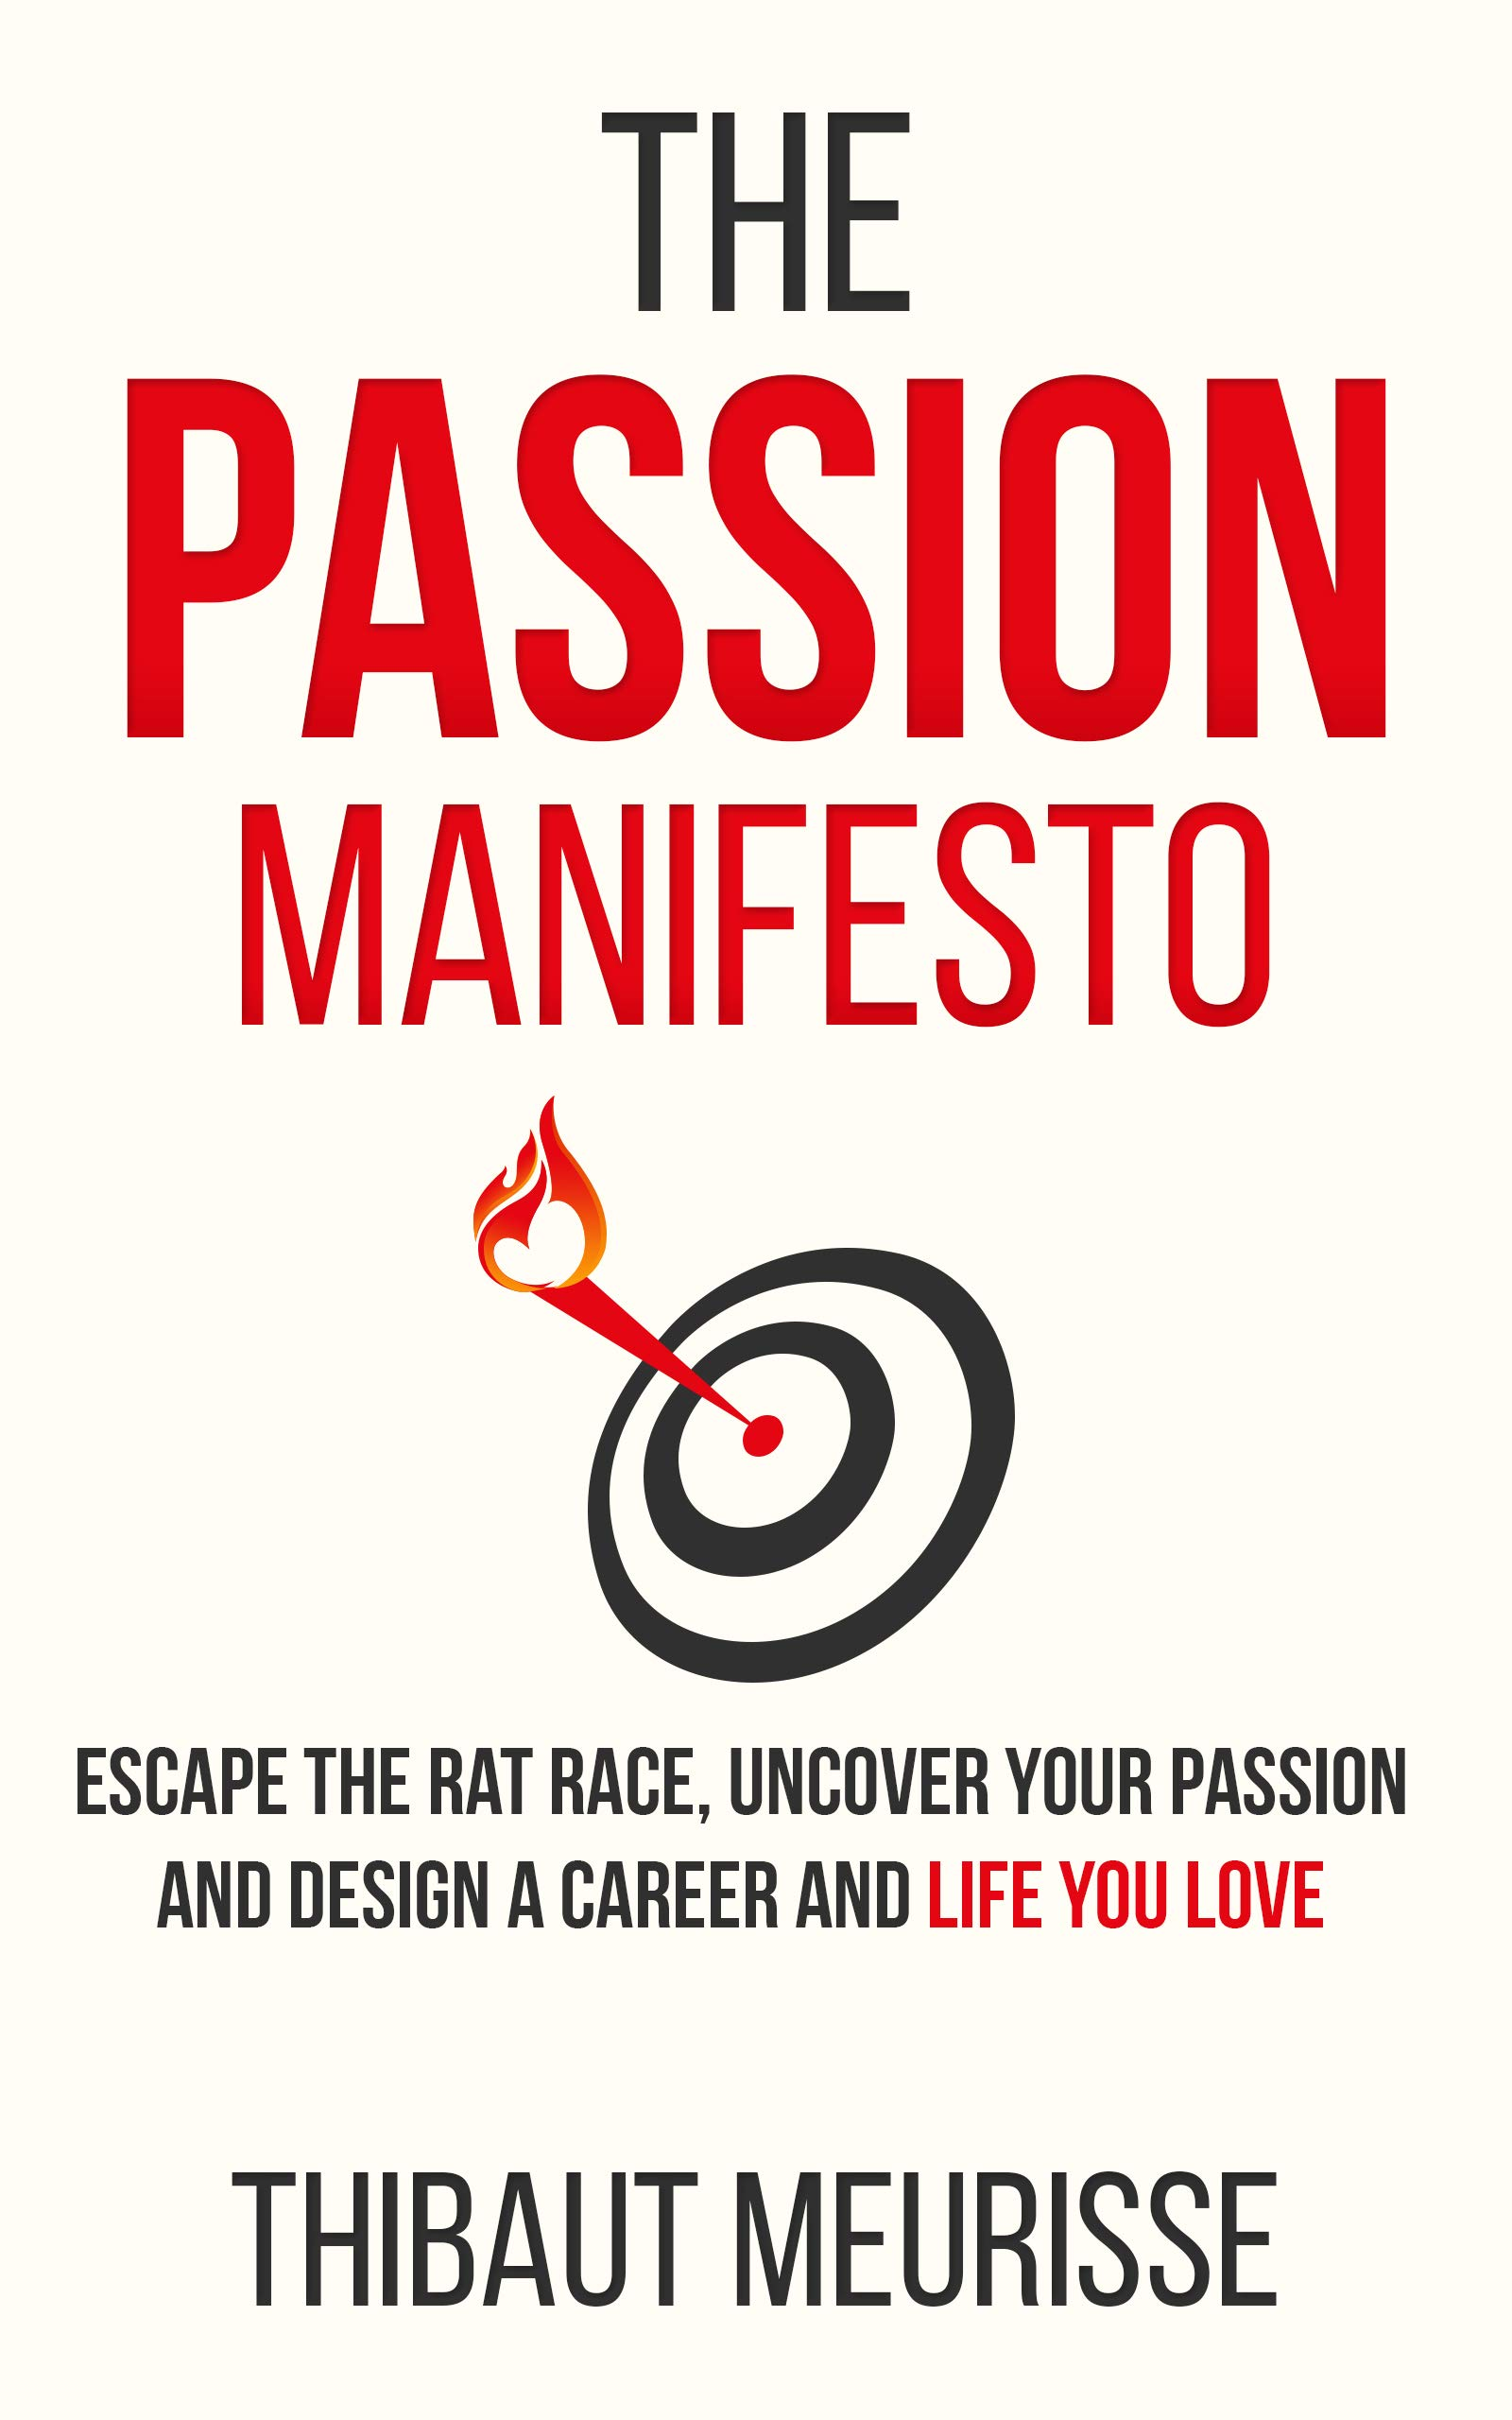 Image OfThe Passion Manifesto: Escape The Rat Race,  Uncover Your Passion And Design A Career And Life You Love